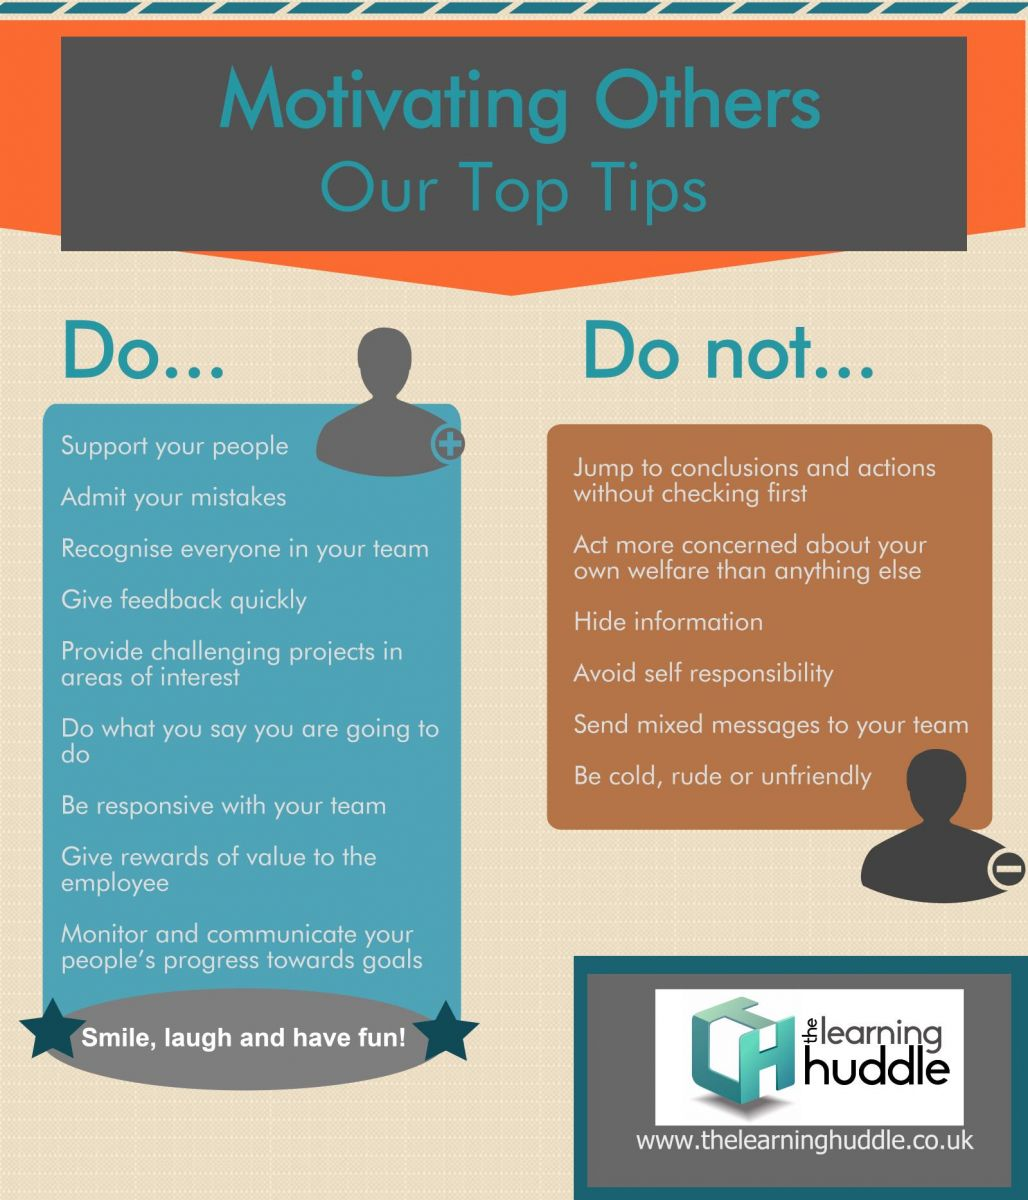 Top tips for motivating your team